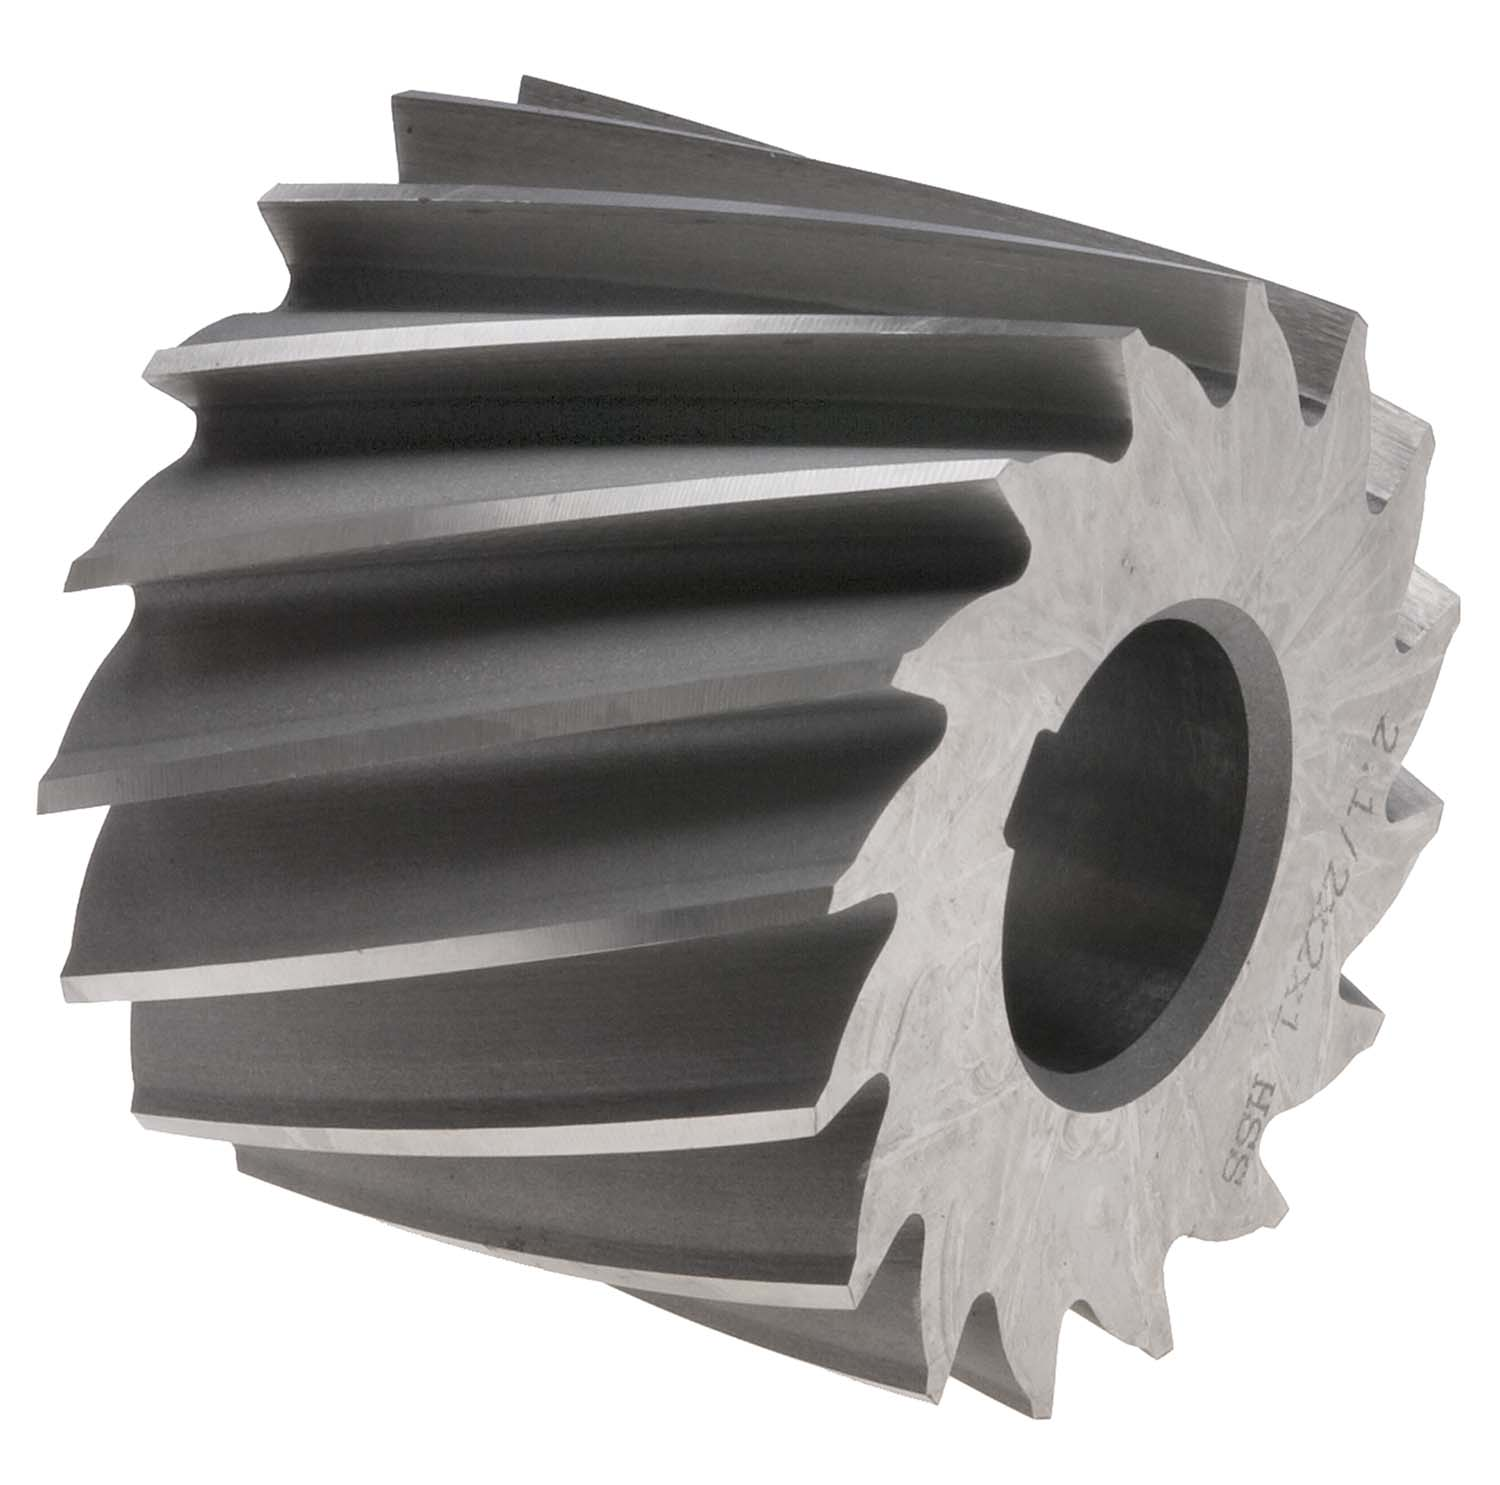 2-1/2 X 3 X 1 Plain Milling Cutter, High Speed Steel